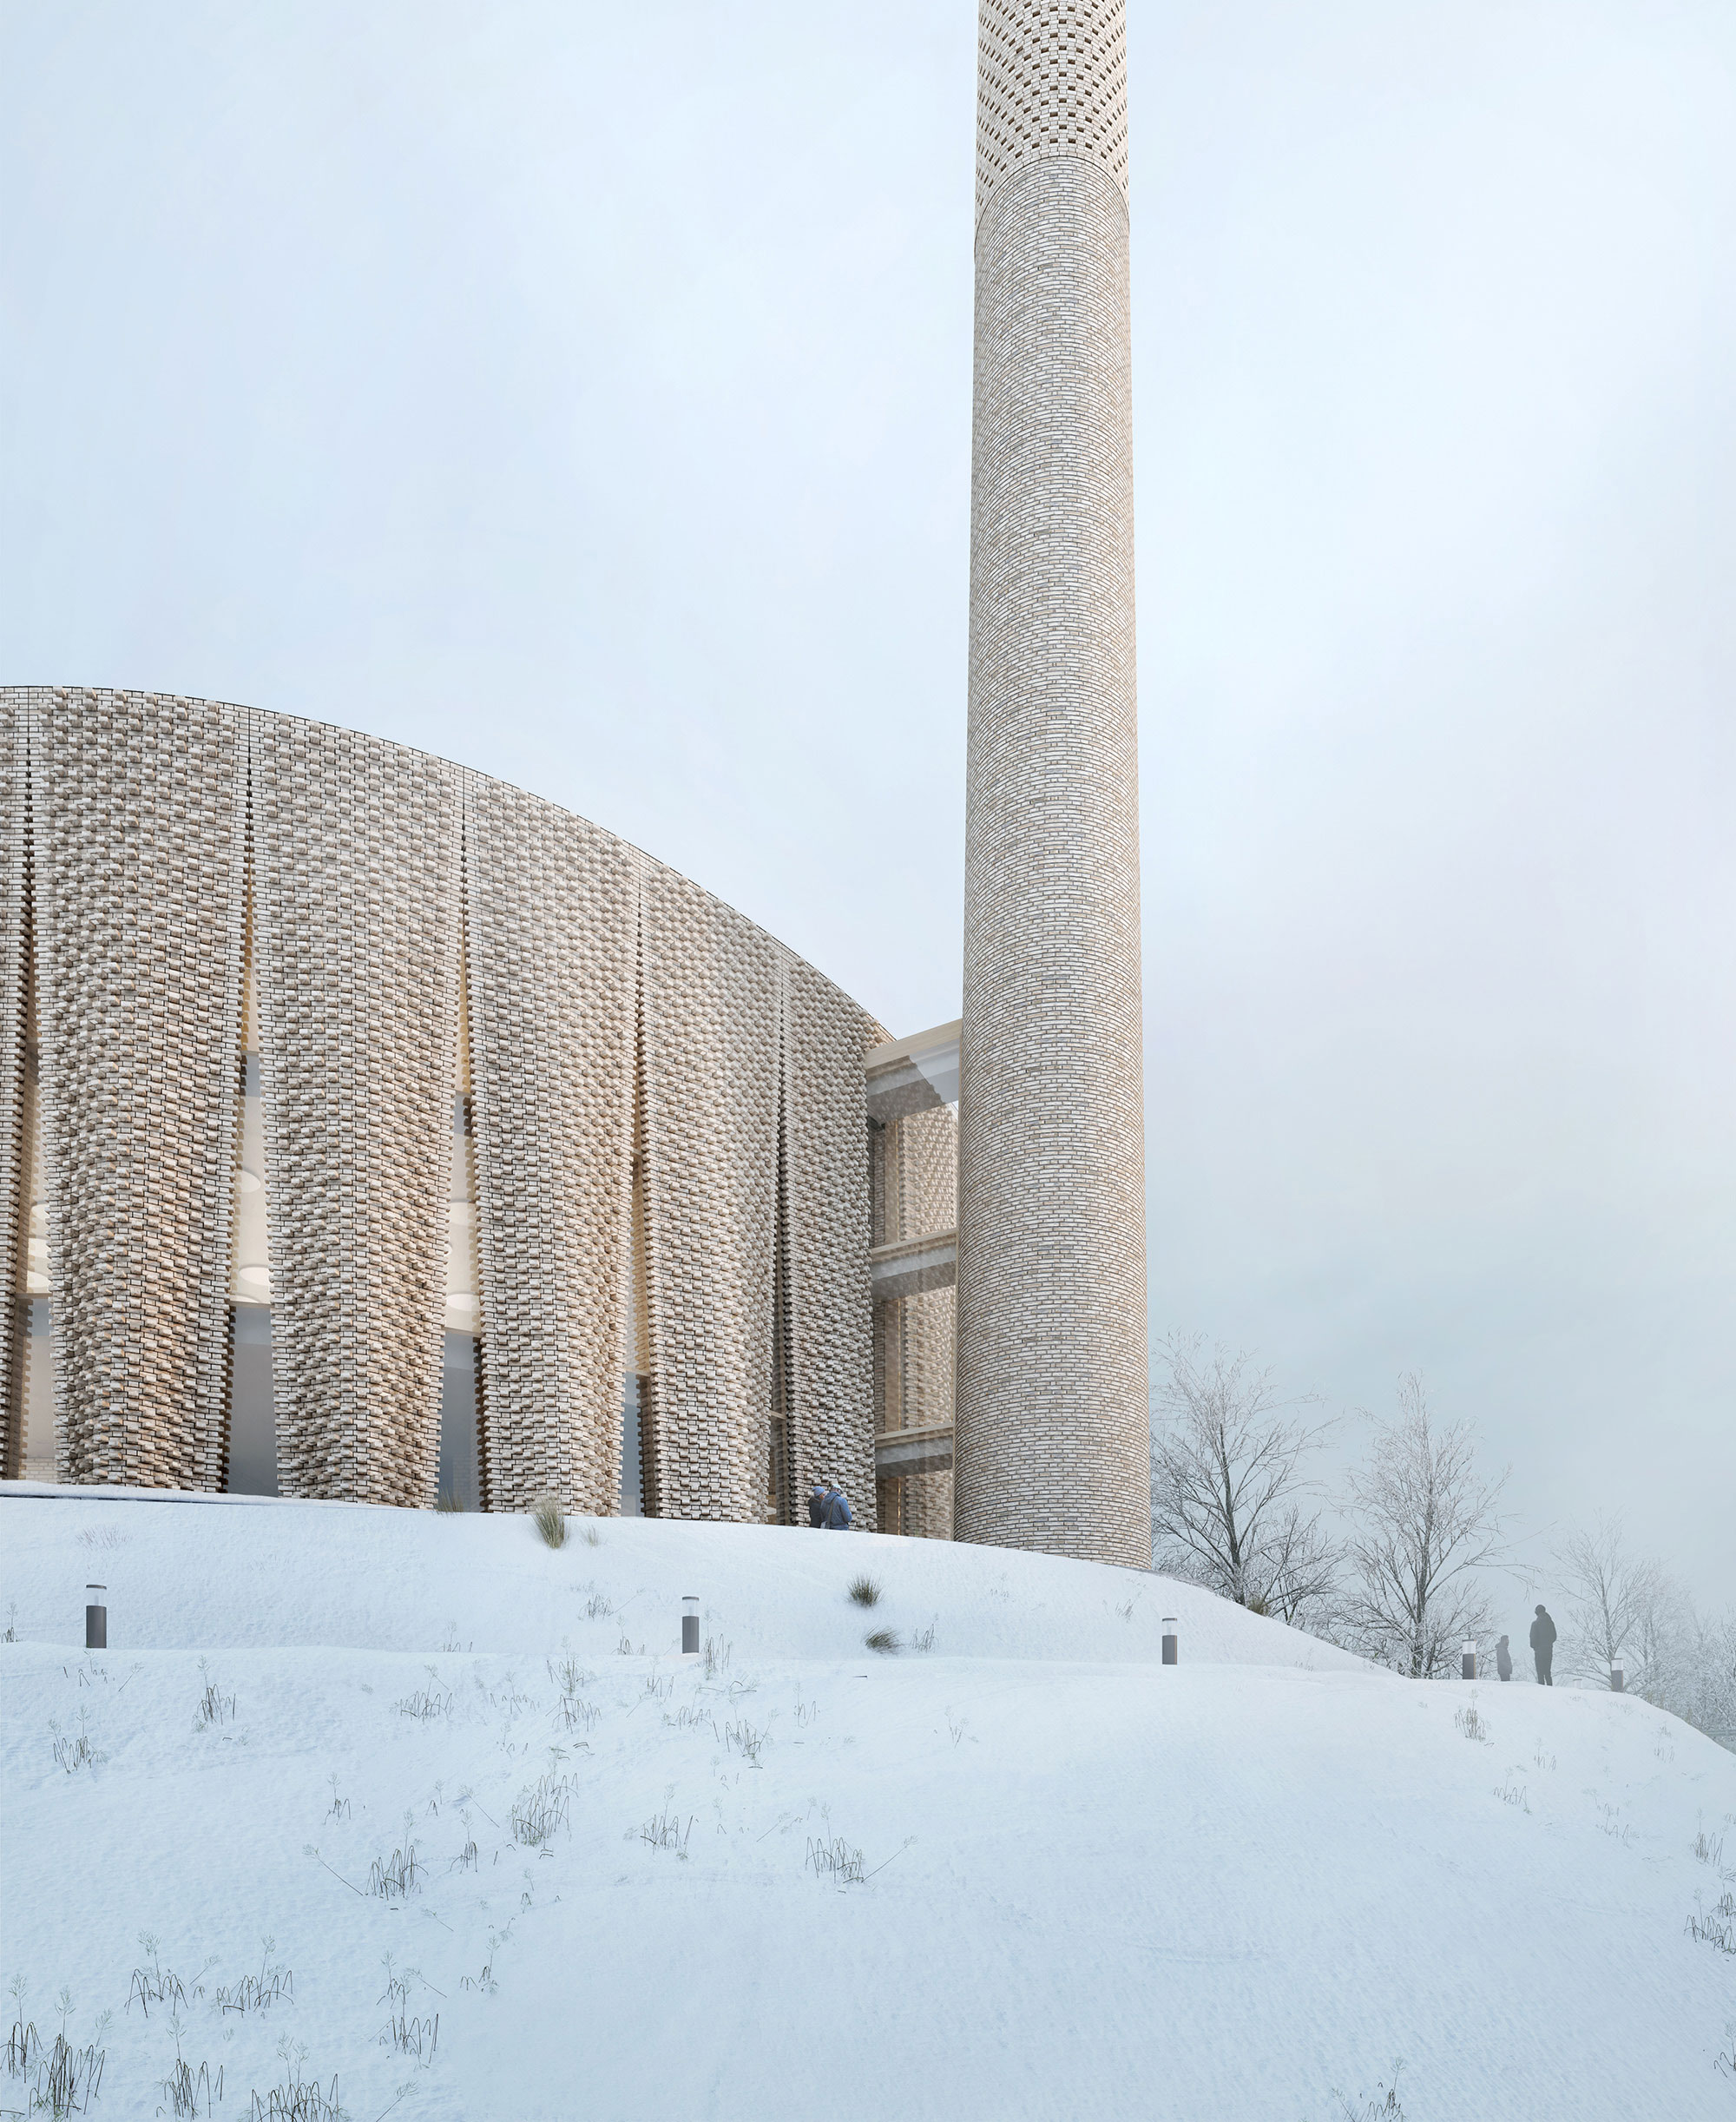 Luca Poian Forms wins competition to design new Preston mosque